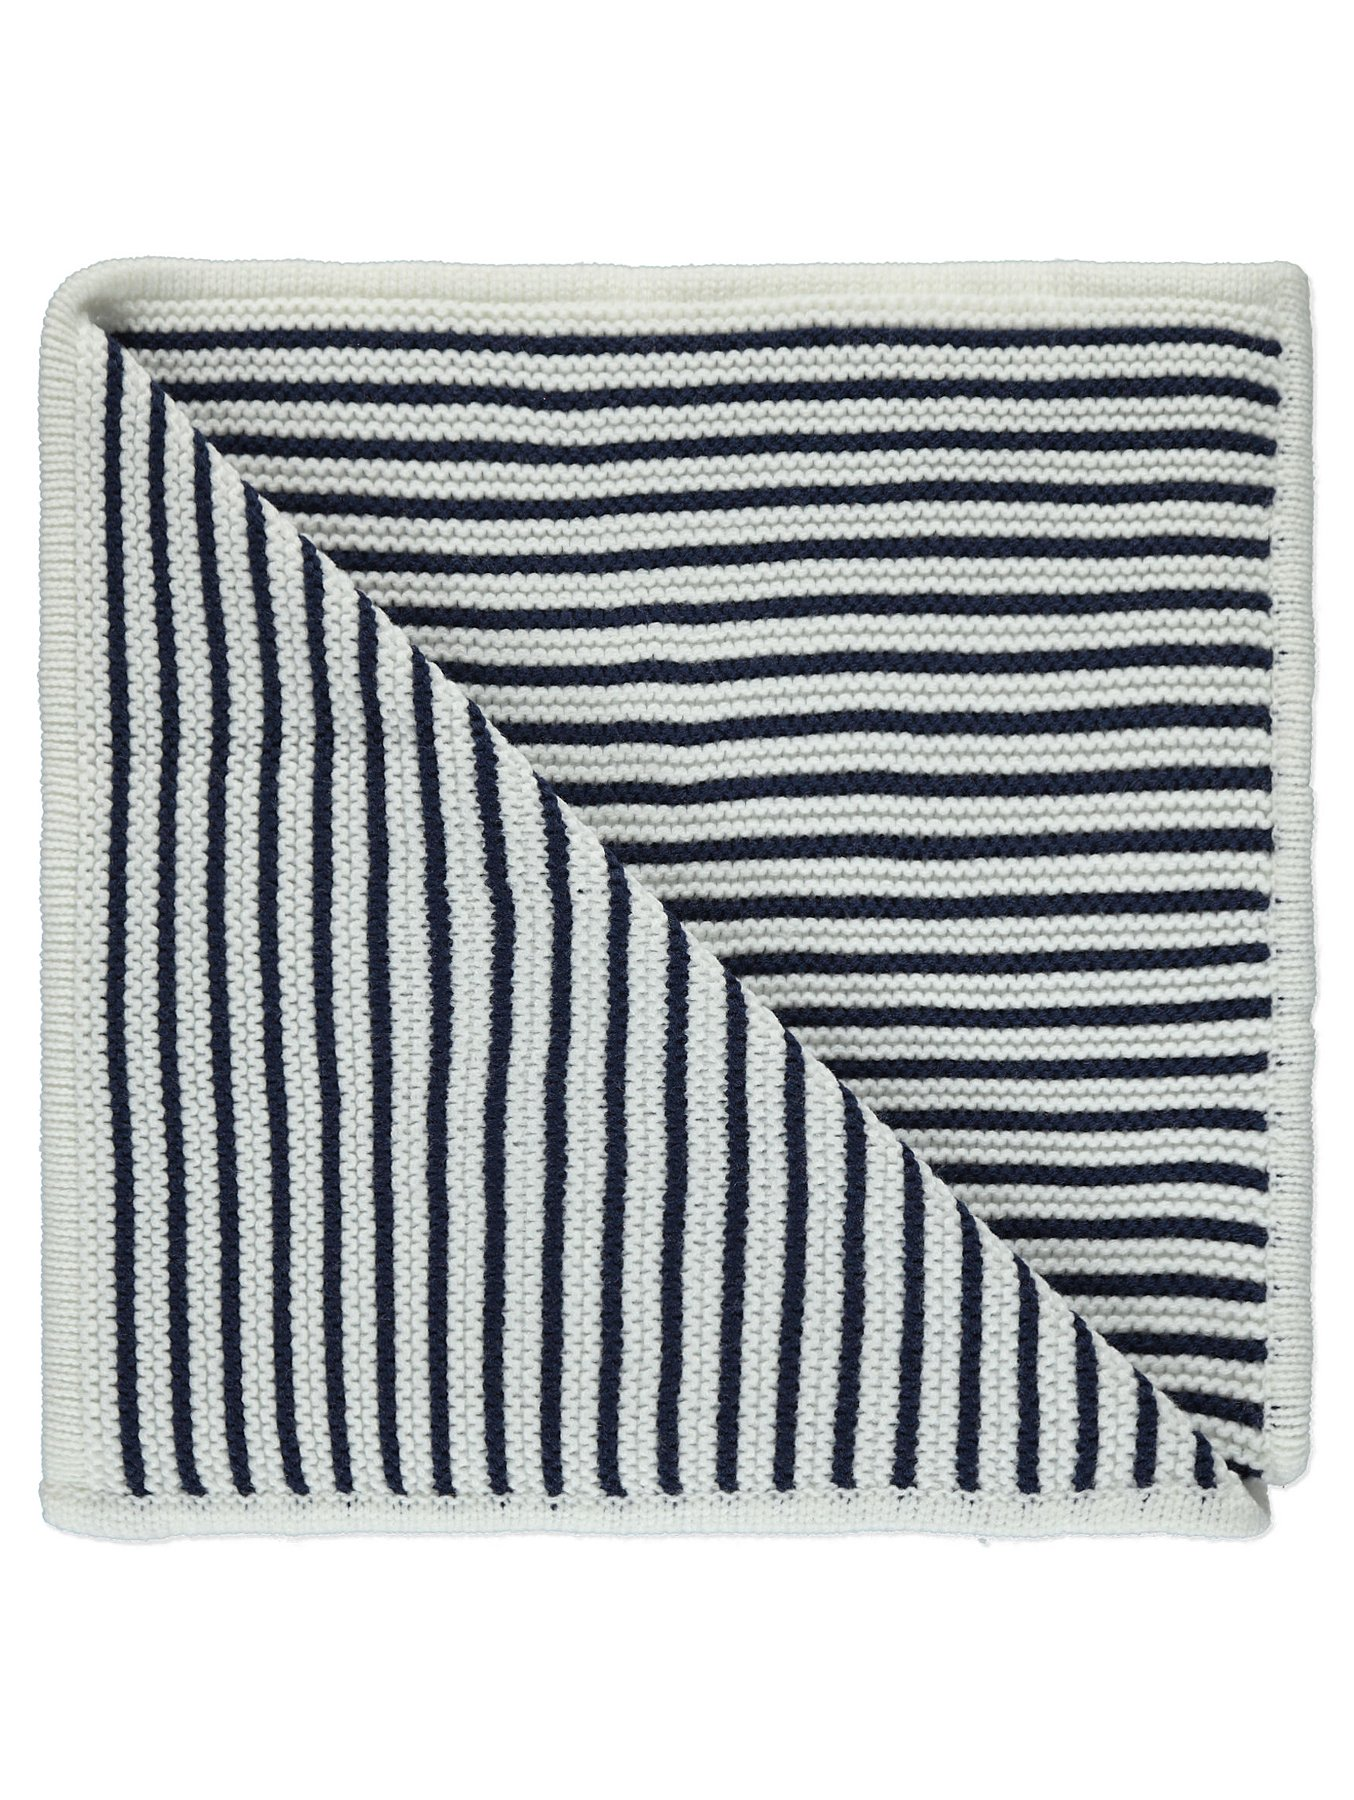 Navy Nautical Knitted Shawl Baby George